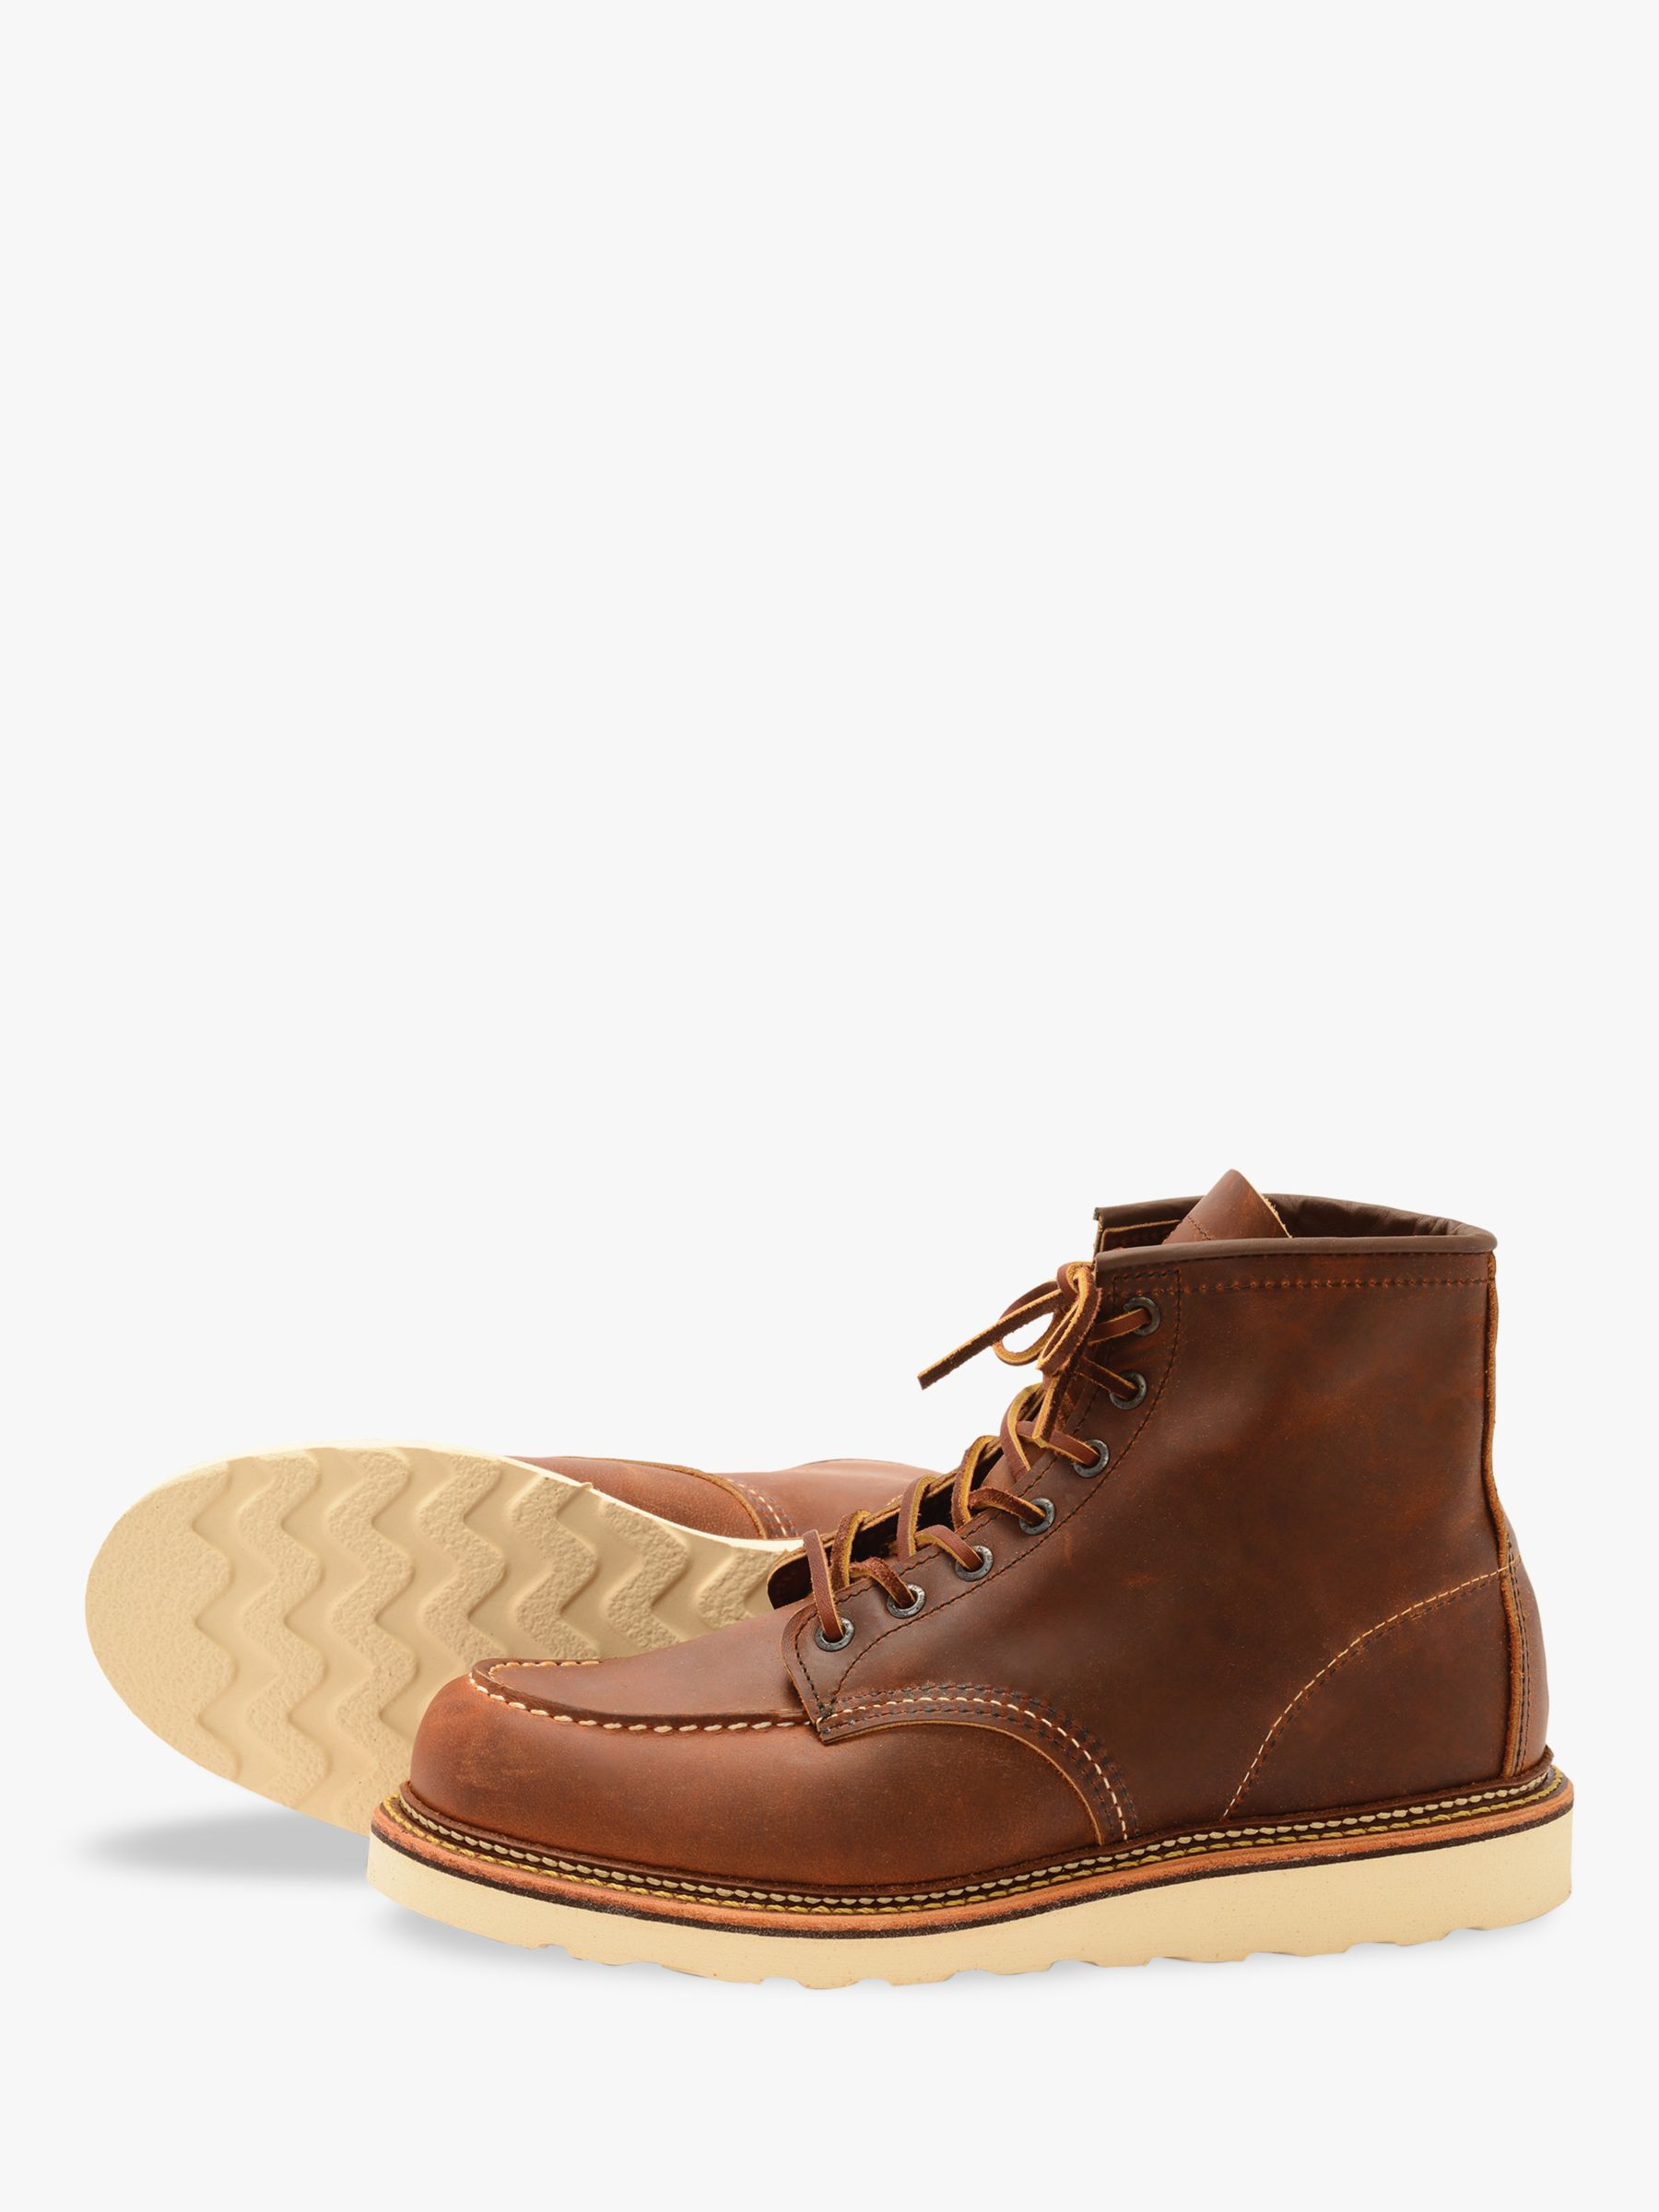 Red Wing Red Wing 1907 Classic Moc Toe Boots, Copper